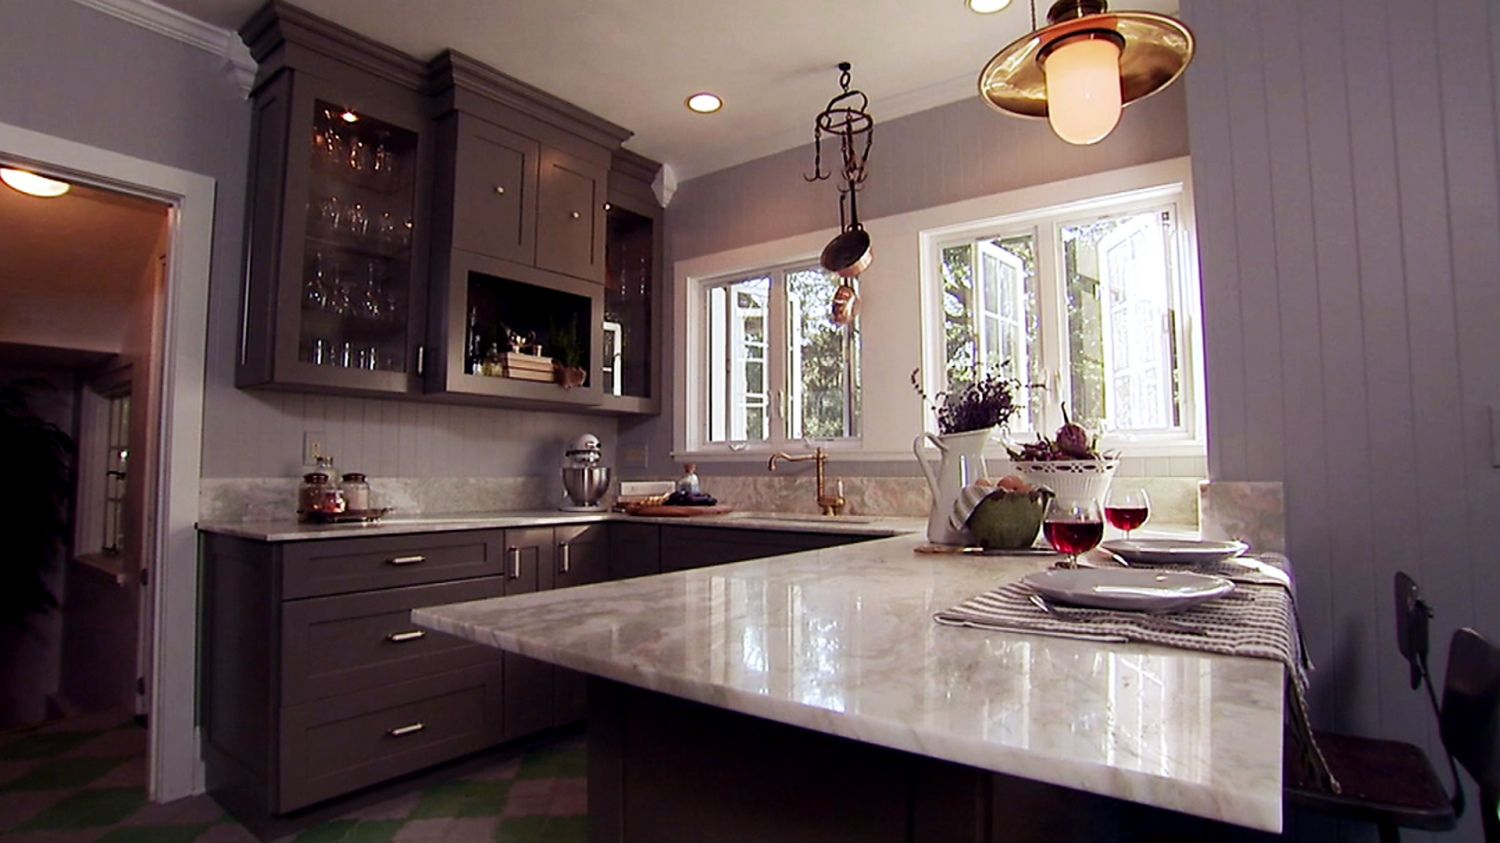 100 Hgtv Paint Colors Kitchen  Small Kitchen Remodel Ideas On A Glamorous Kitchen Design Low Budget Design Inspiration